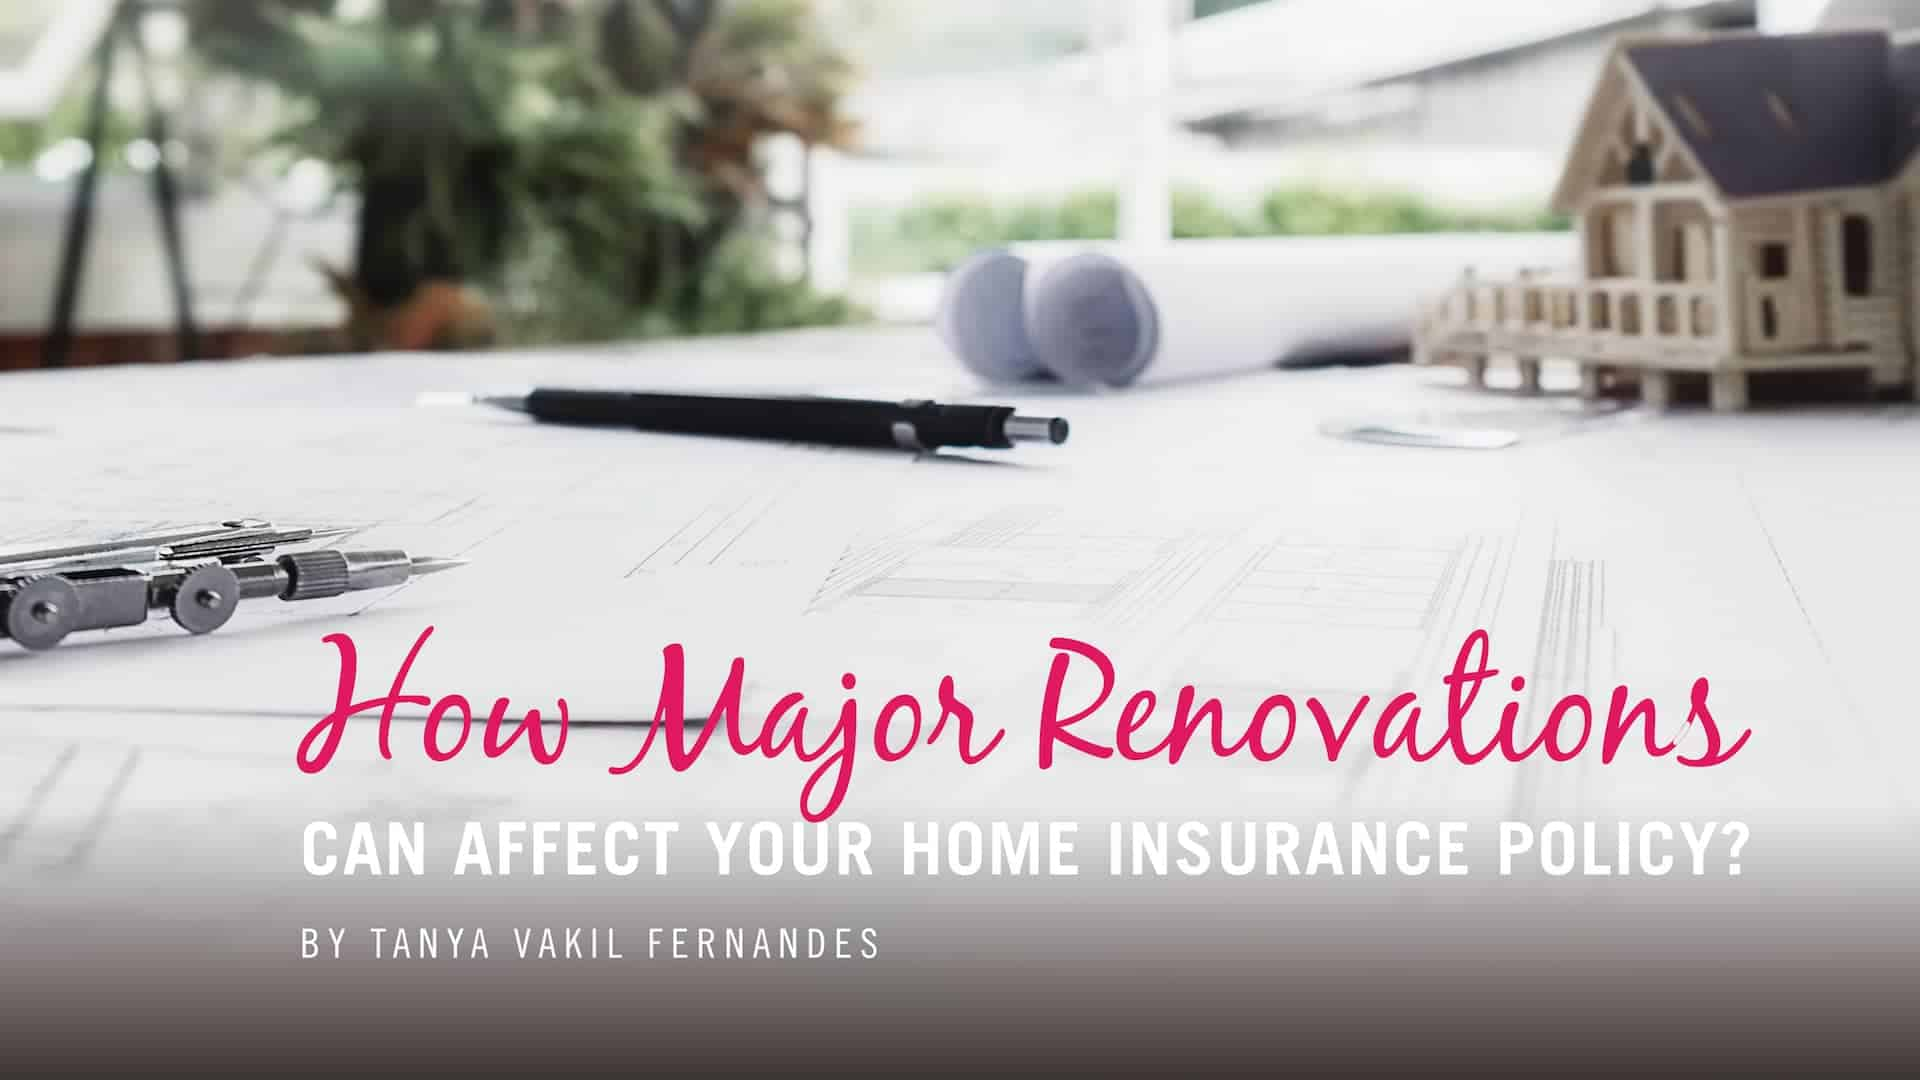 How Major Renovations CAN AFFECT YOUR HOME INSURANCE POLICY?